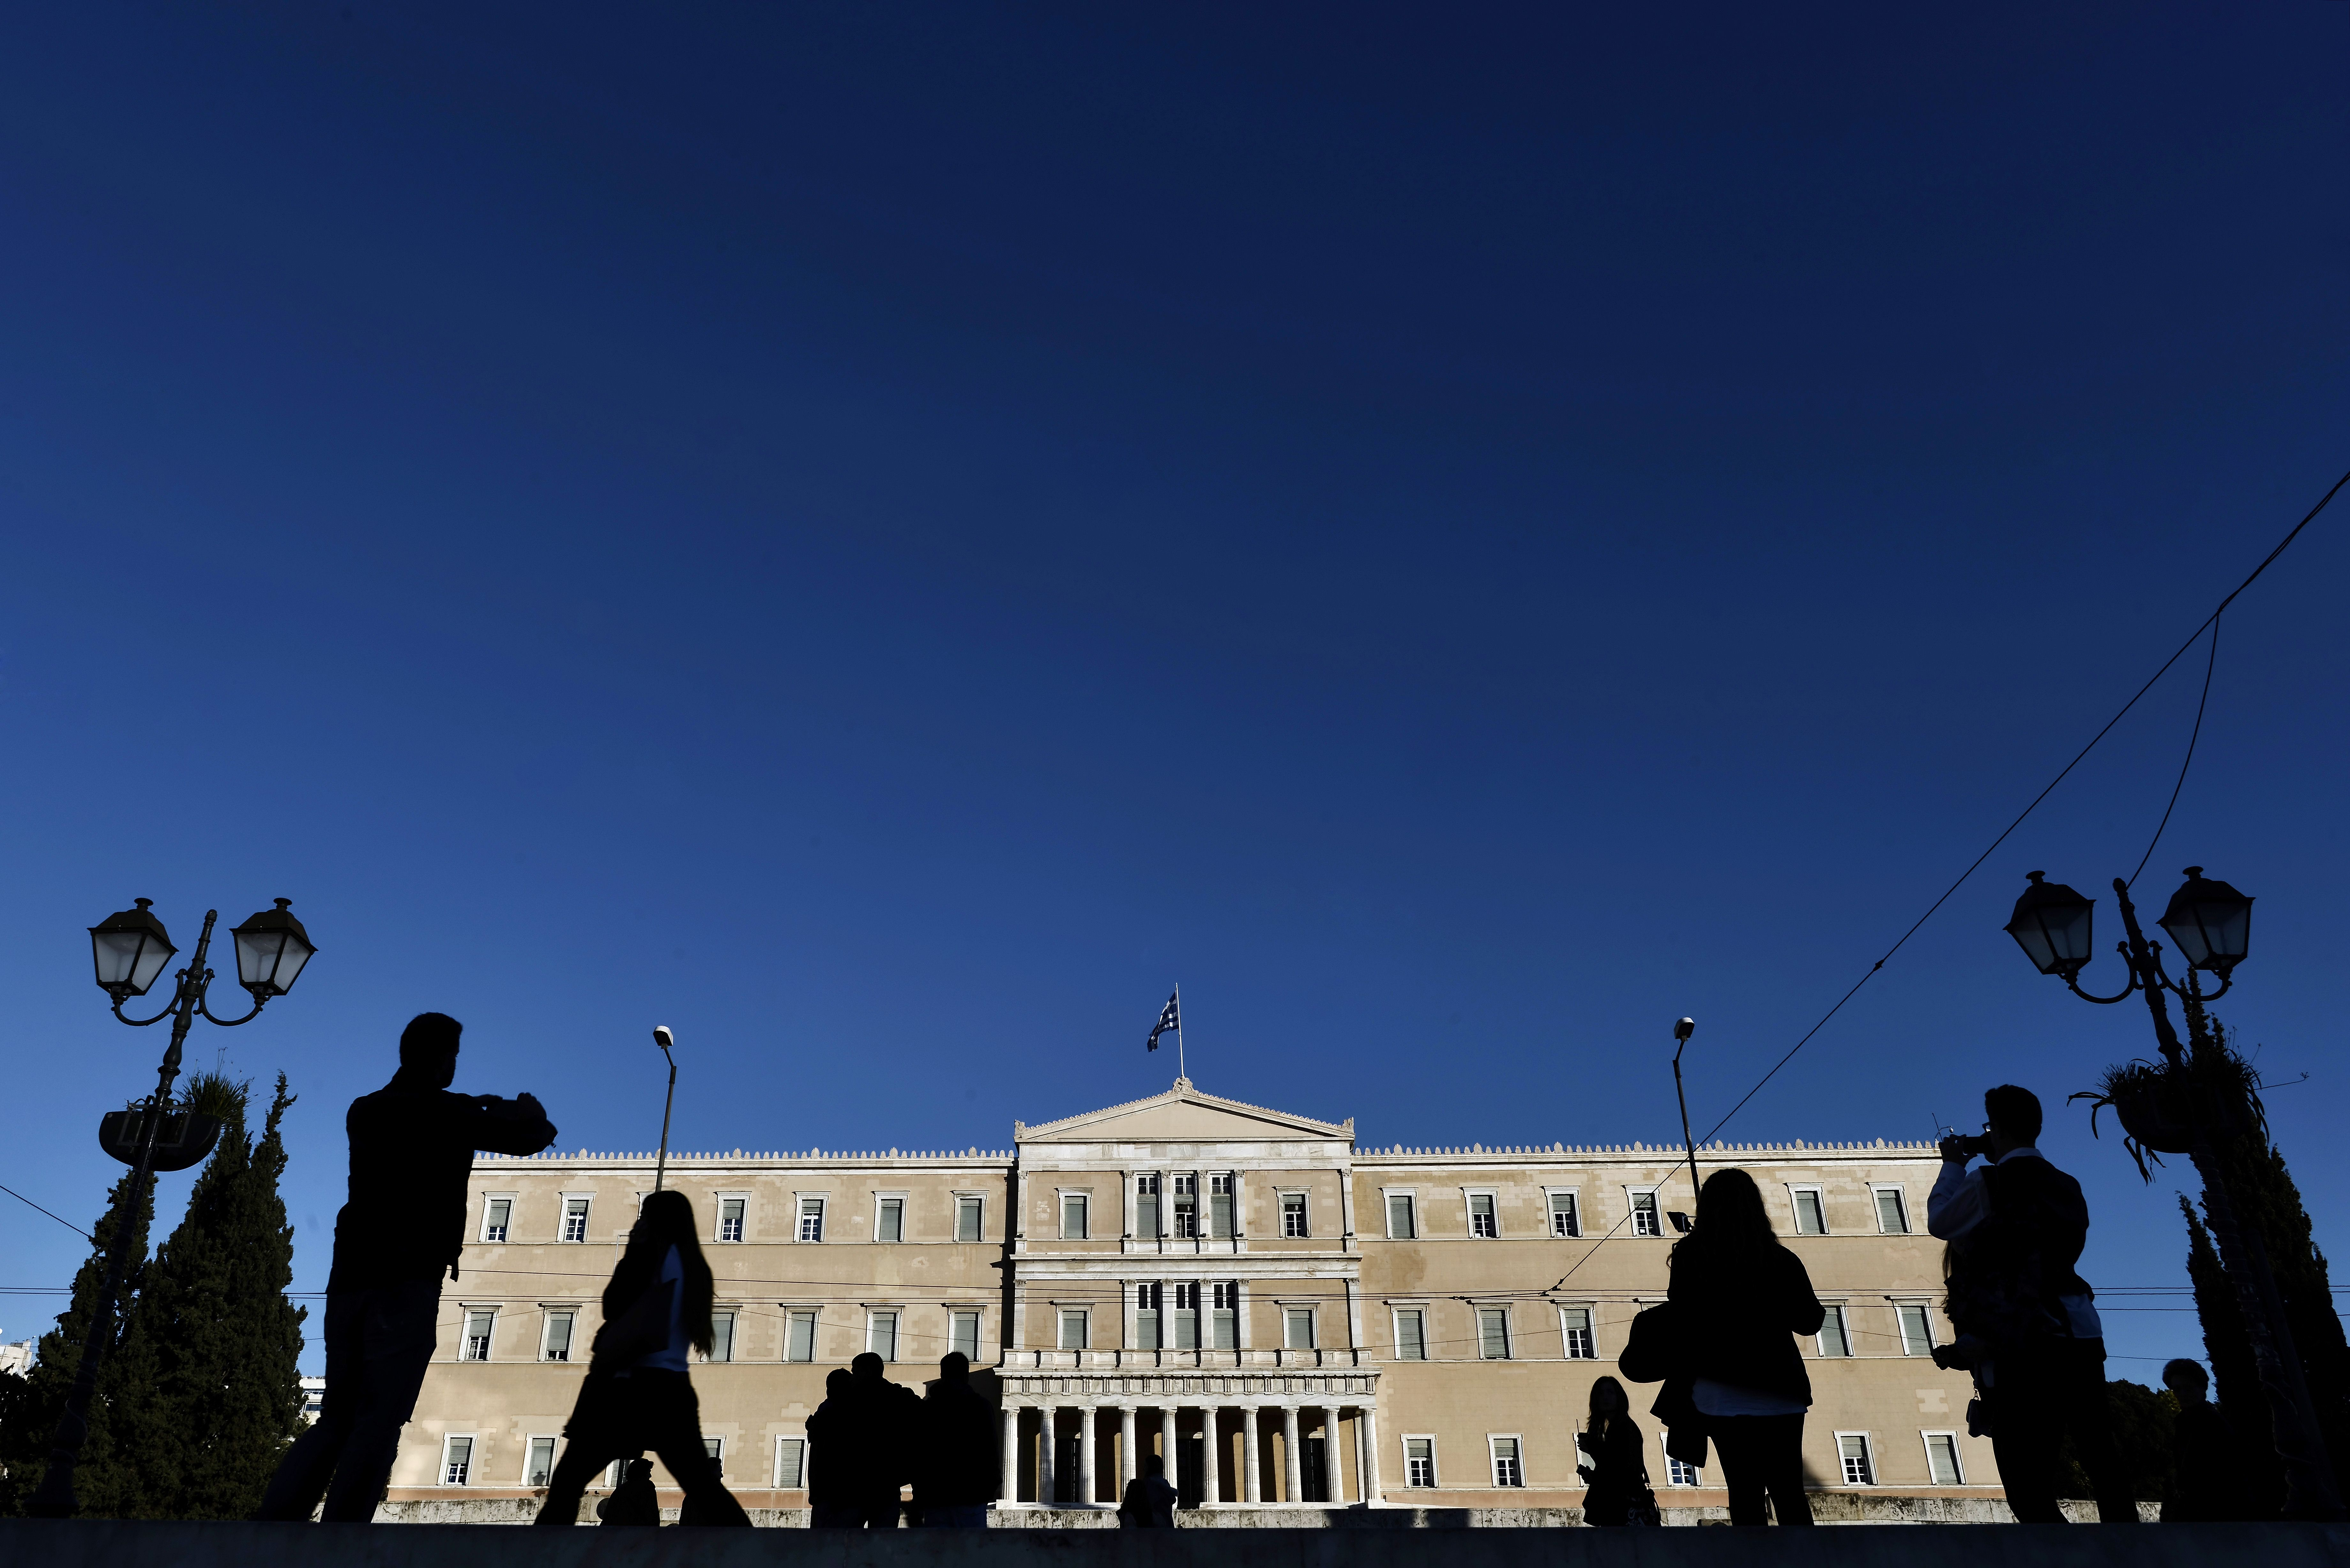 People walk past the Greek Parliament in Athens on Dec. 17, 2014. Greece is a step away from early elections that could repudiate its international bailout and rekindle a euro-zone crisis after lawmakers failed to elect a President